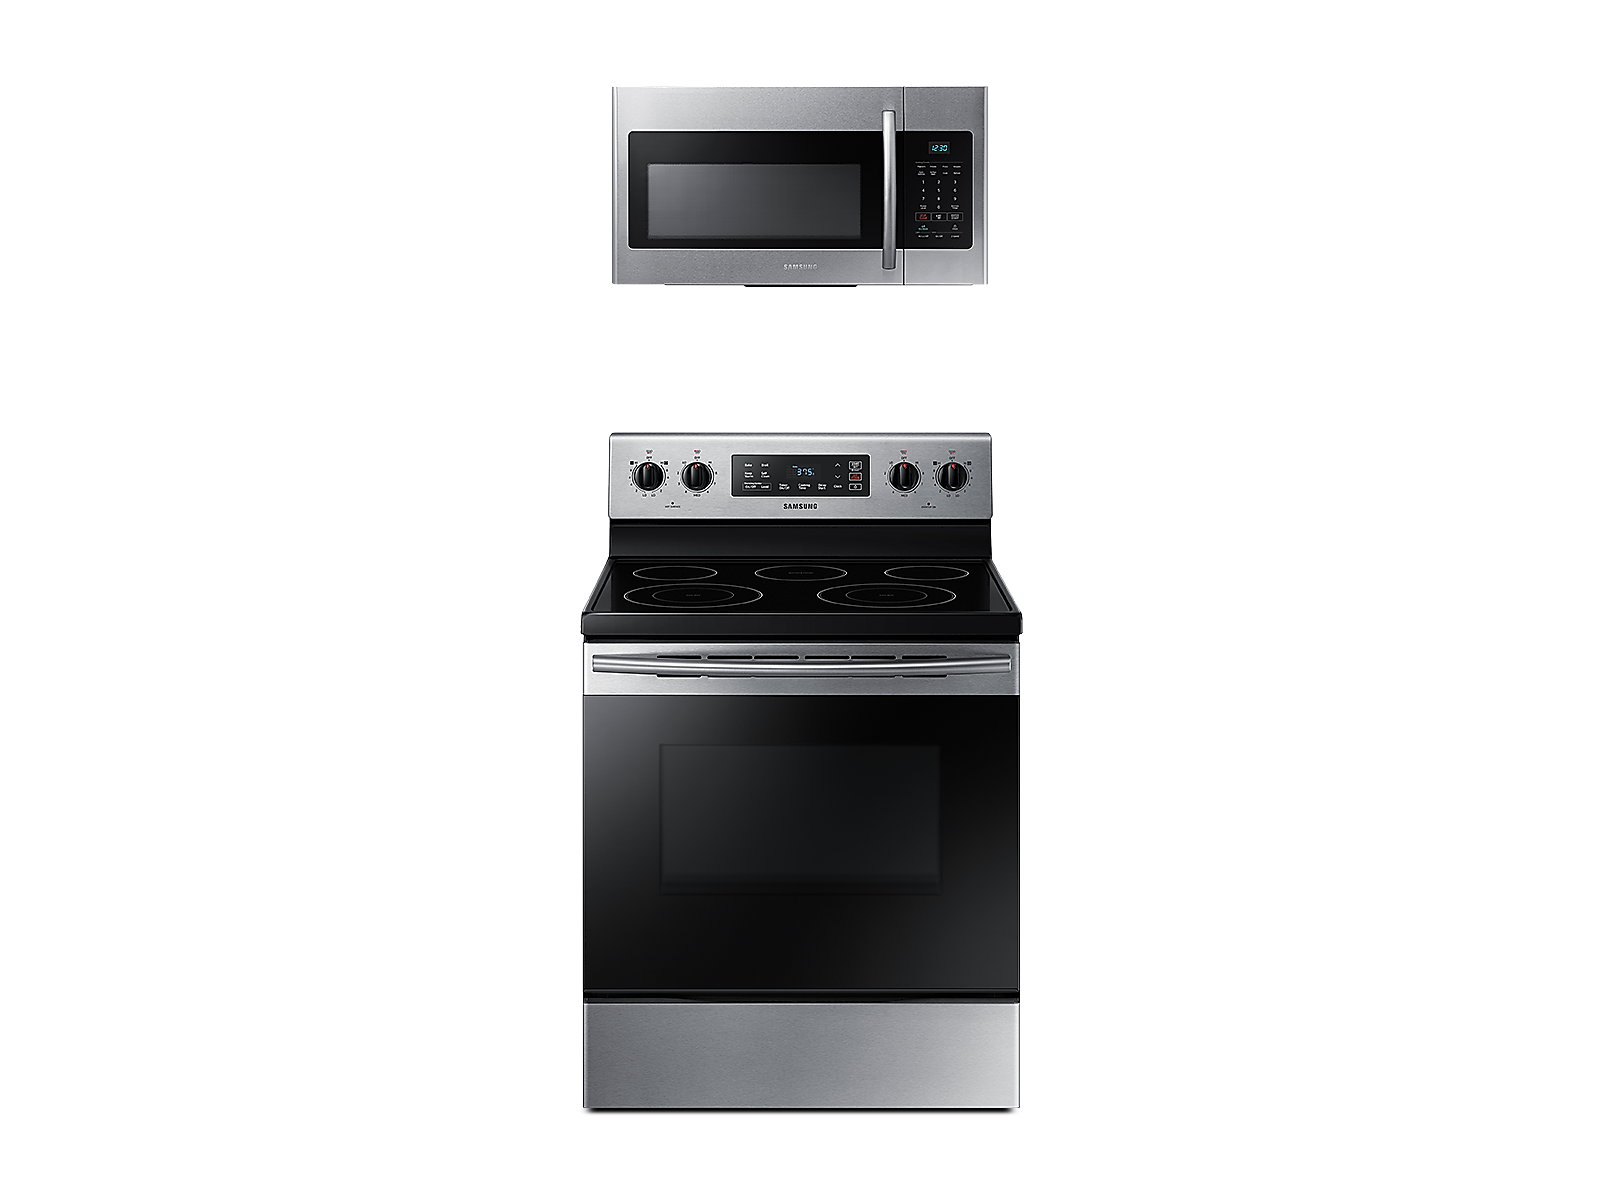 Samsung Freestanding Electric Range + Over-the-Range Microwave in Stainless Steel(BNDL-1580226951331)